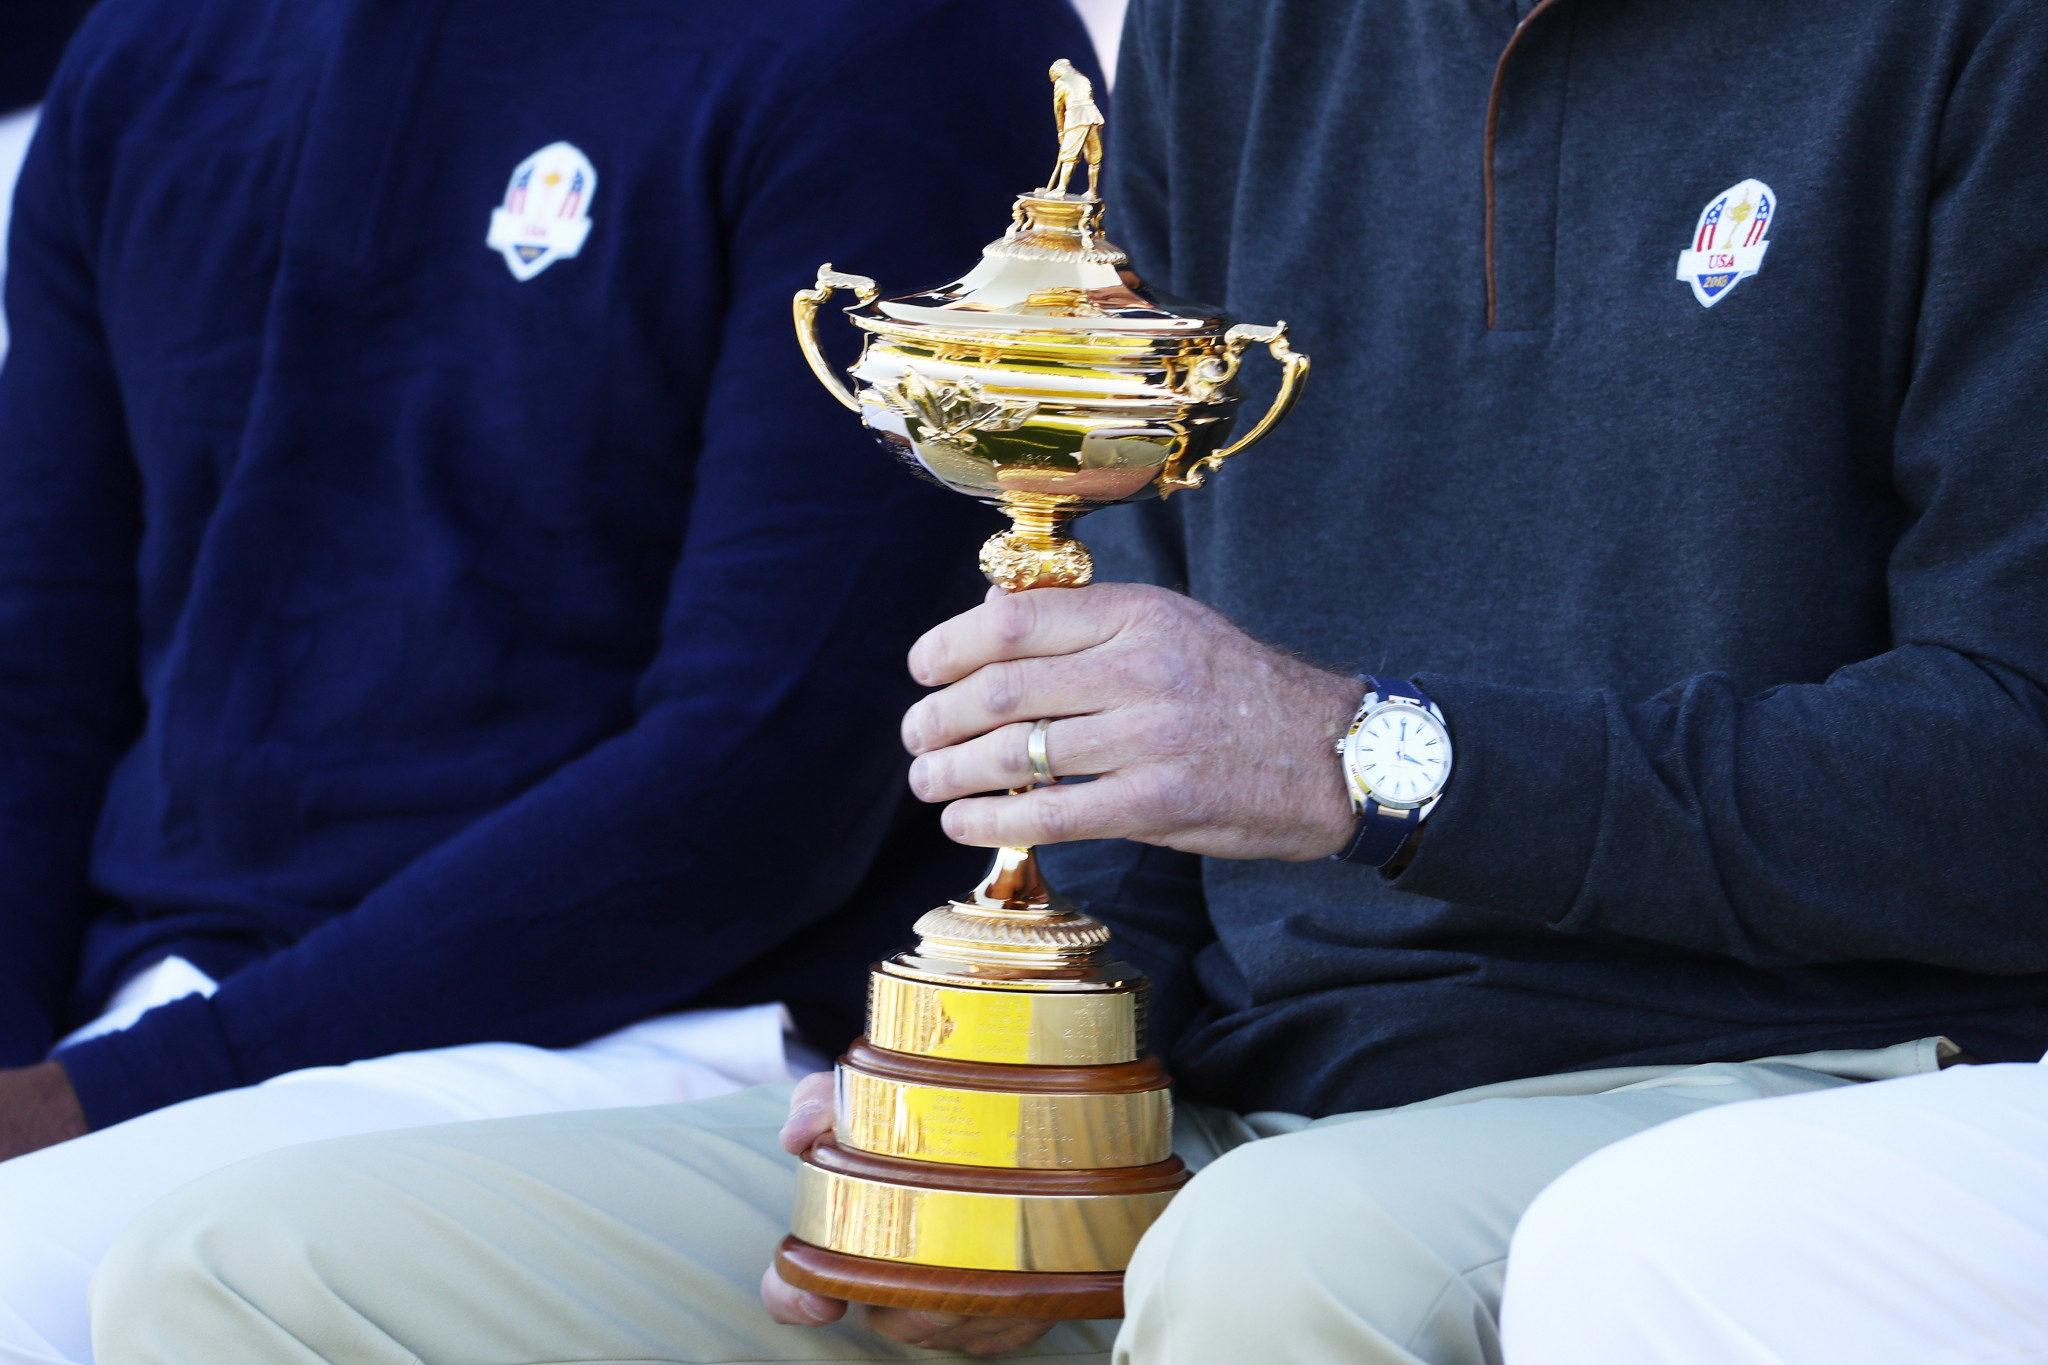 Calm before the storm as Le Golf National prepares to host 2018 Ryder Cup